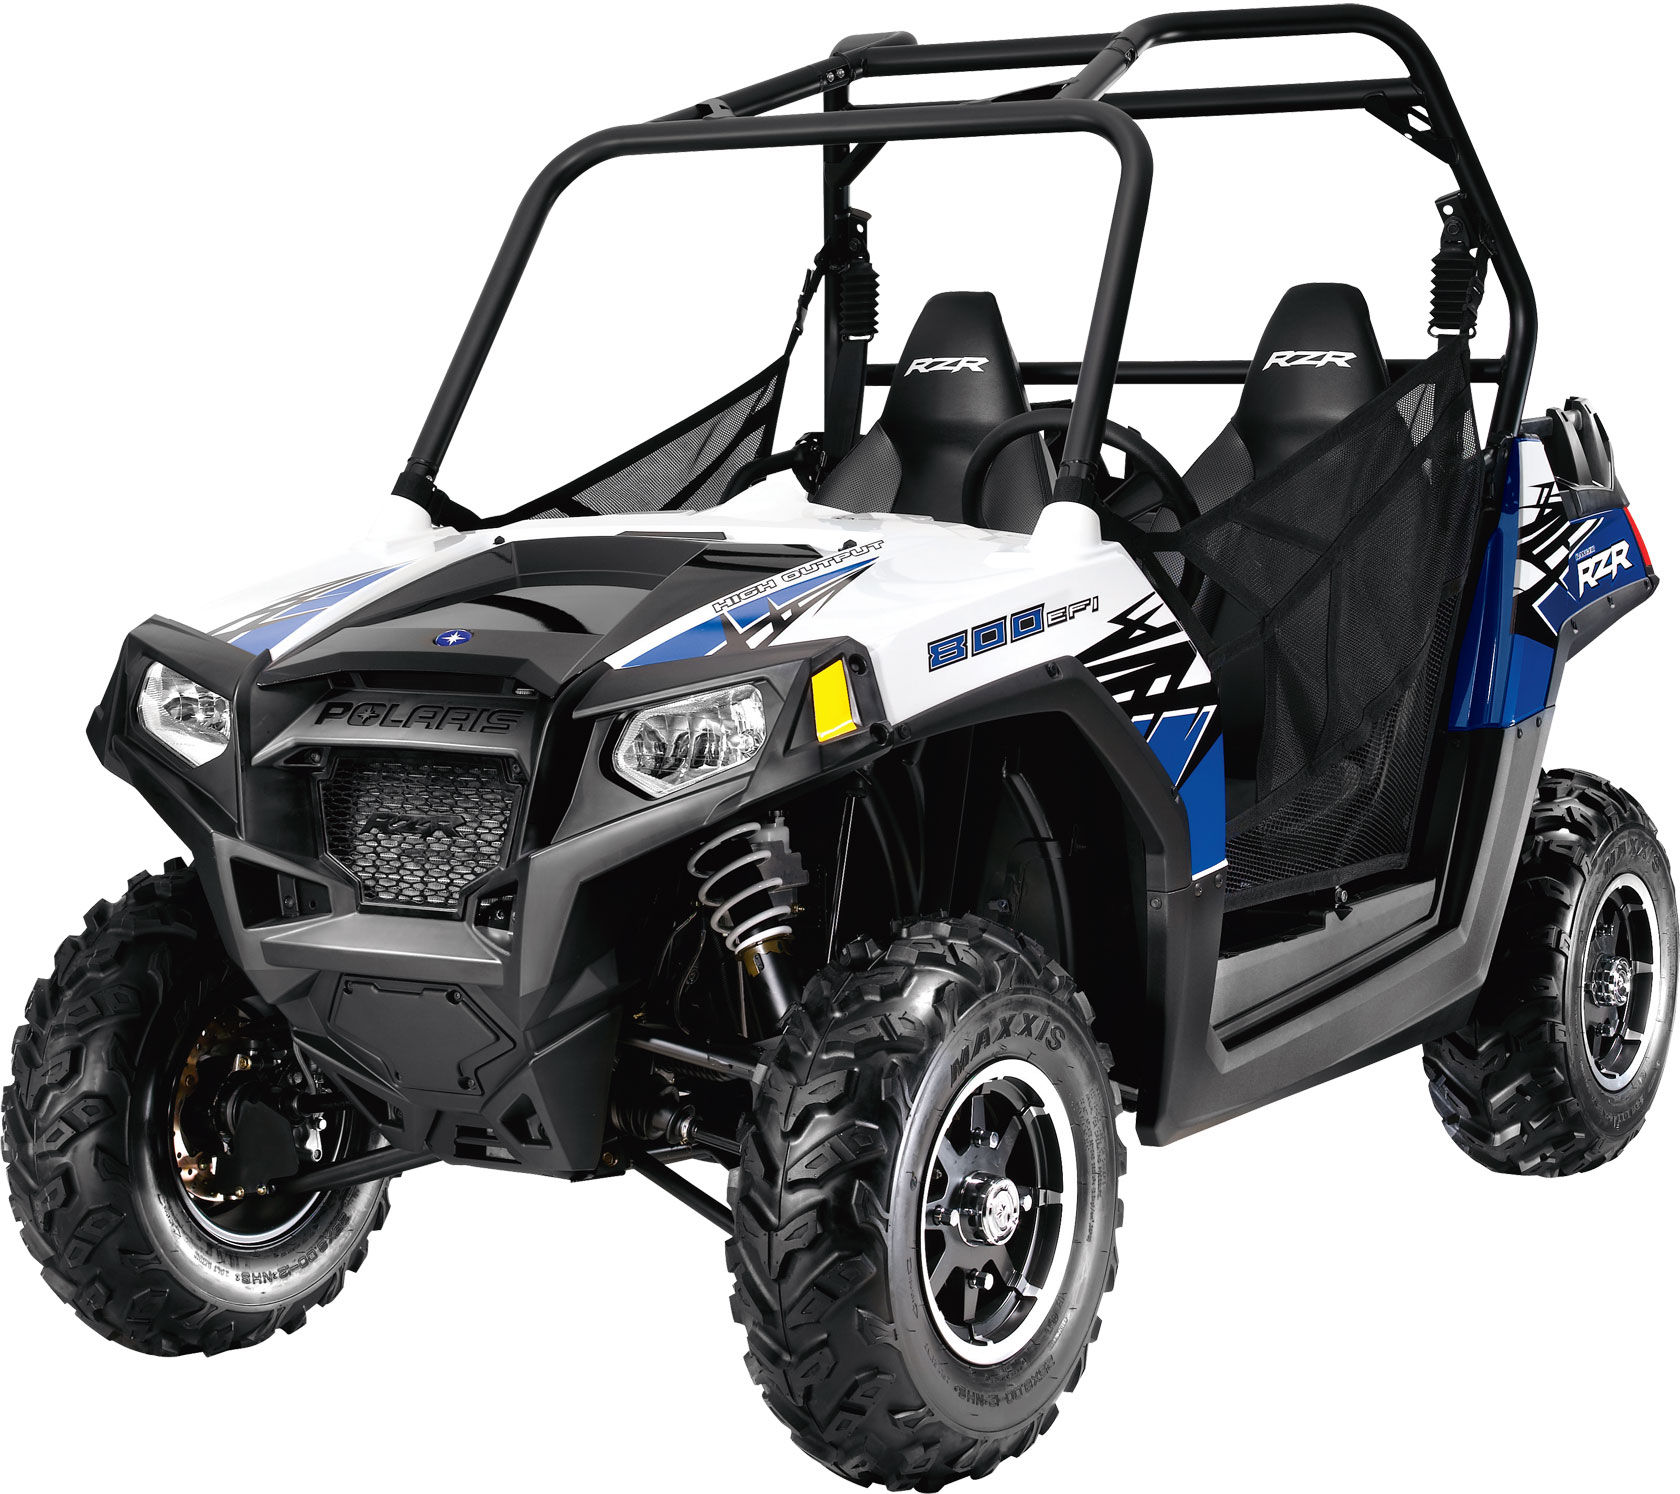 hight resolution of  polaris rzr 800 le 2010 2011